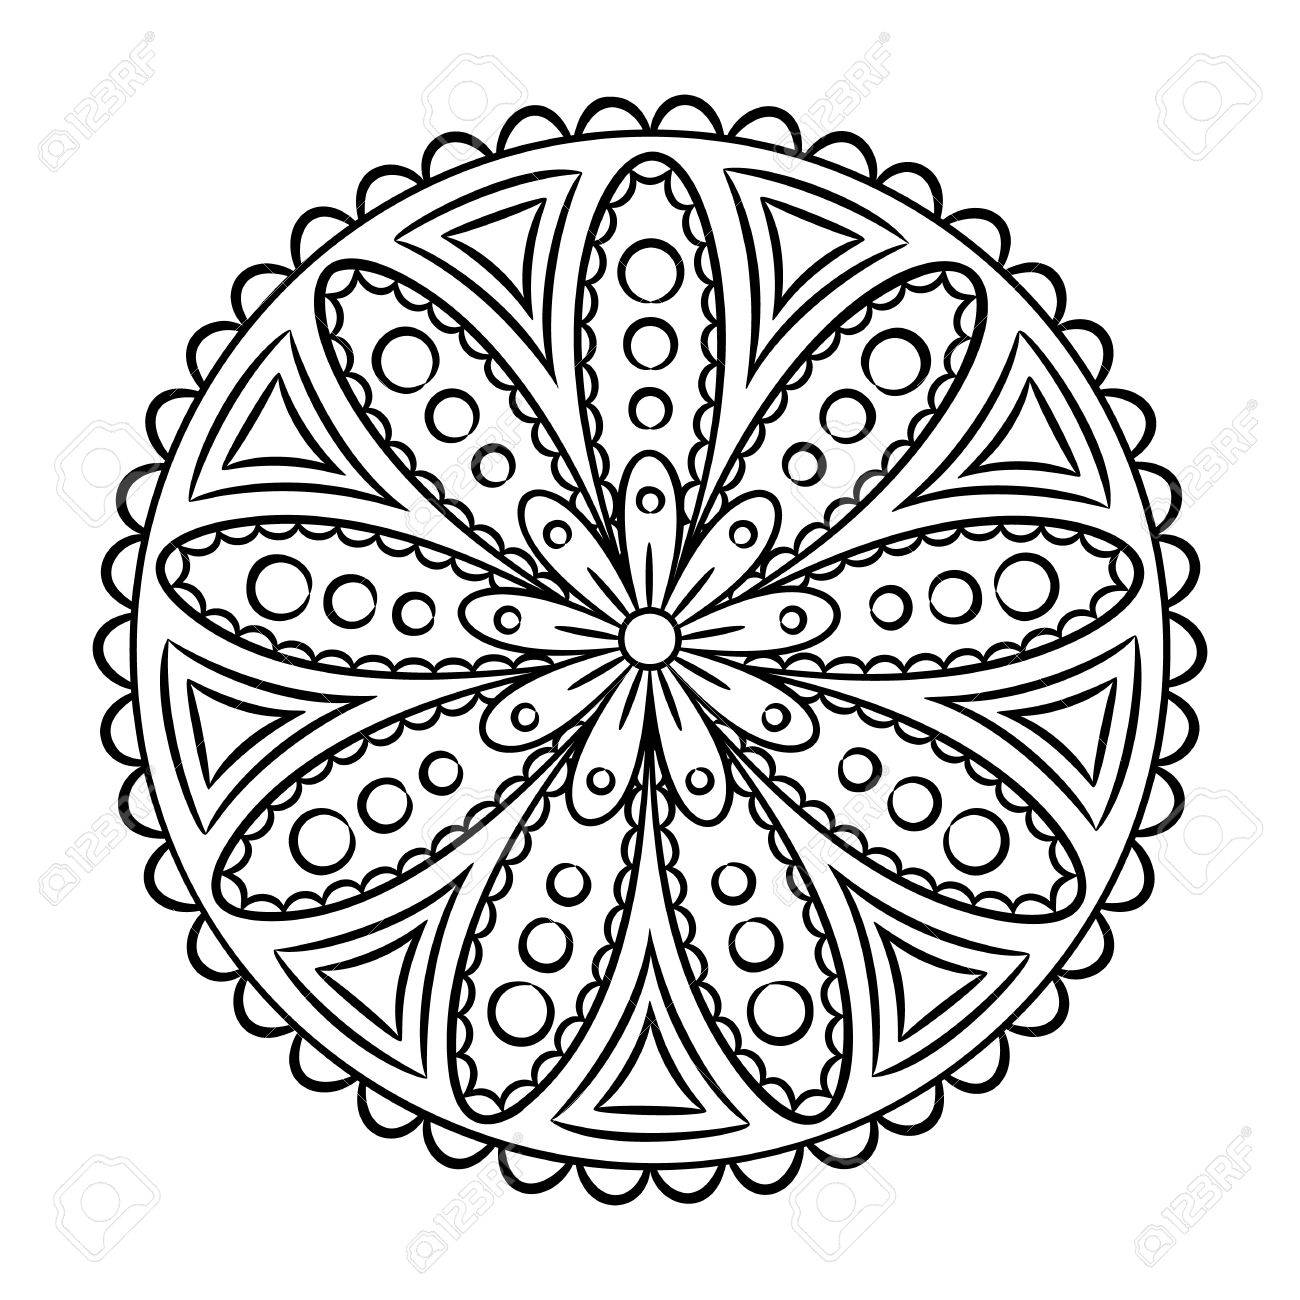 doodle mandala coloring page outline floral design element coloring book pattern decorative round - Flower Outline Coloring Page